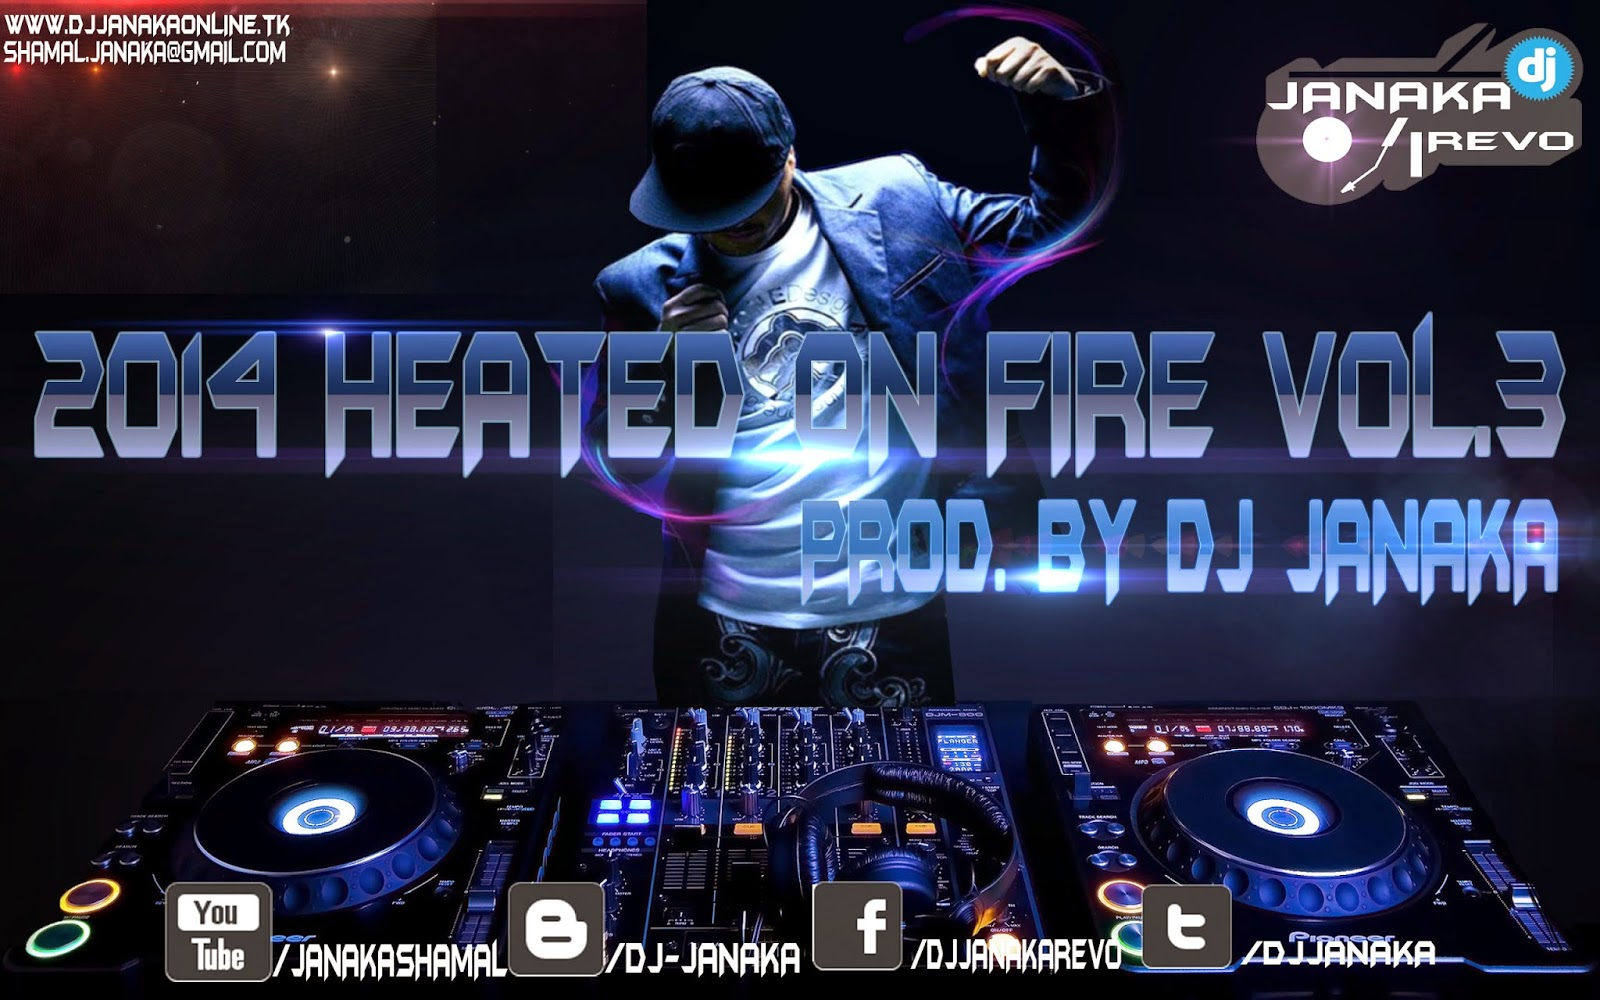 http://old.hulkshare.com/djrajitharemix/2014-heated-on-fire-vol-3-prod-by-dj-janaka